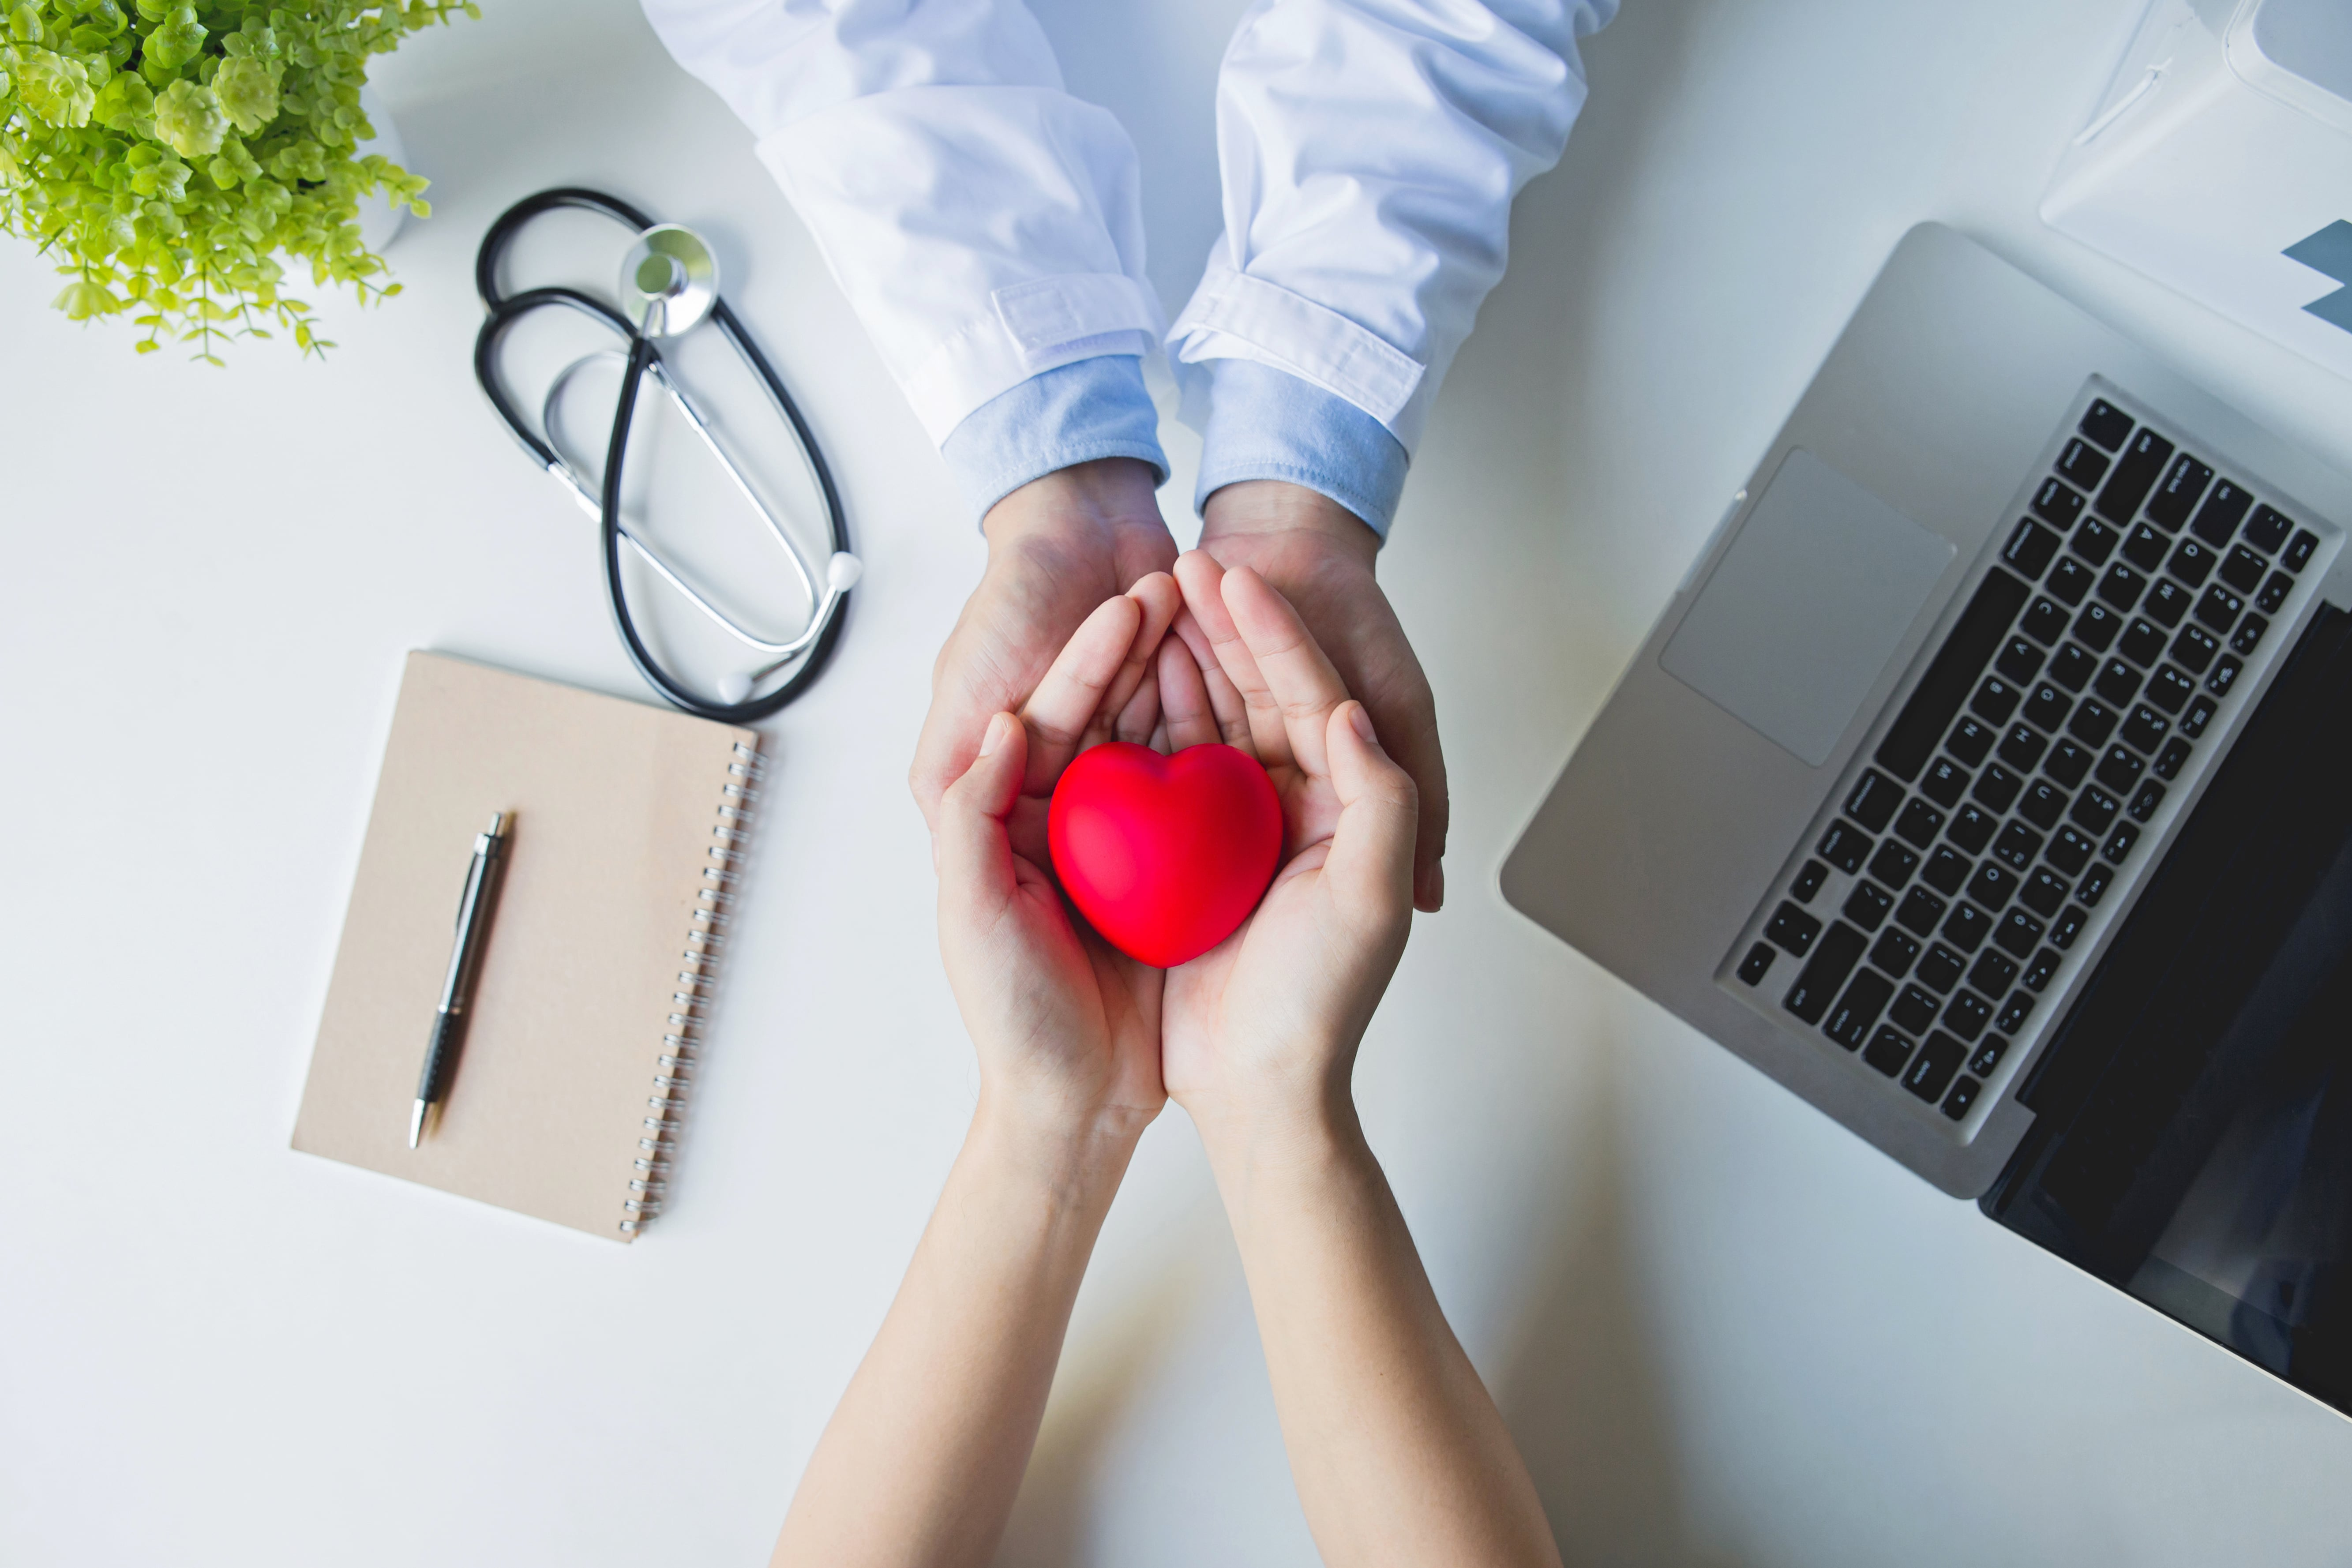 top-view-doctor-patient-hands-holding-red-heart-white-table-min